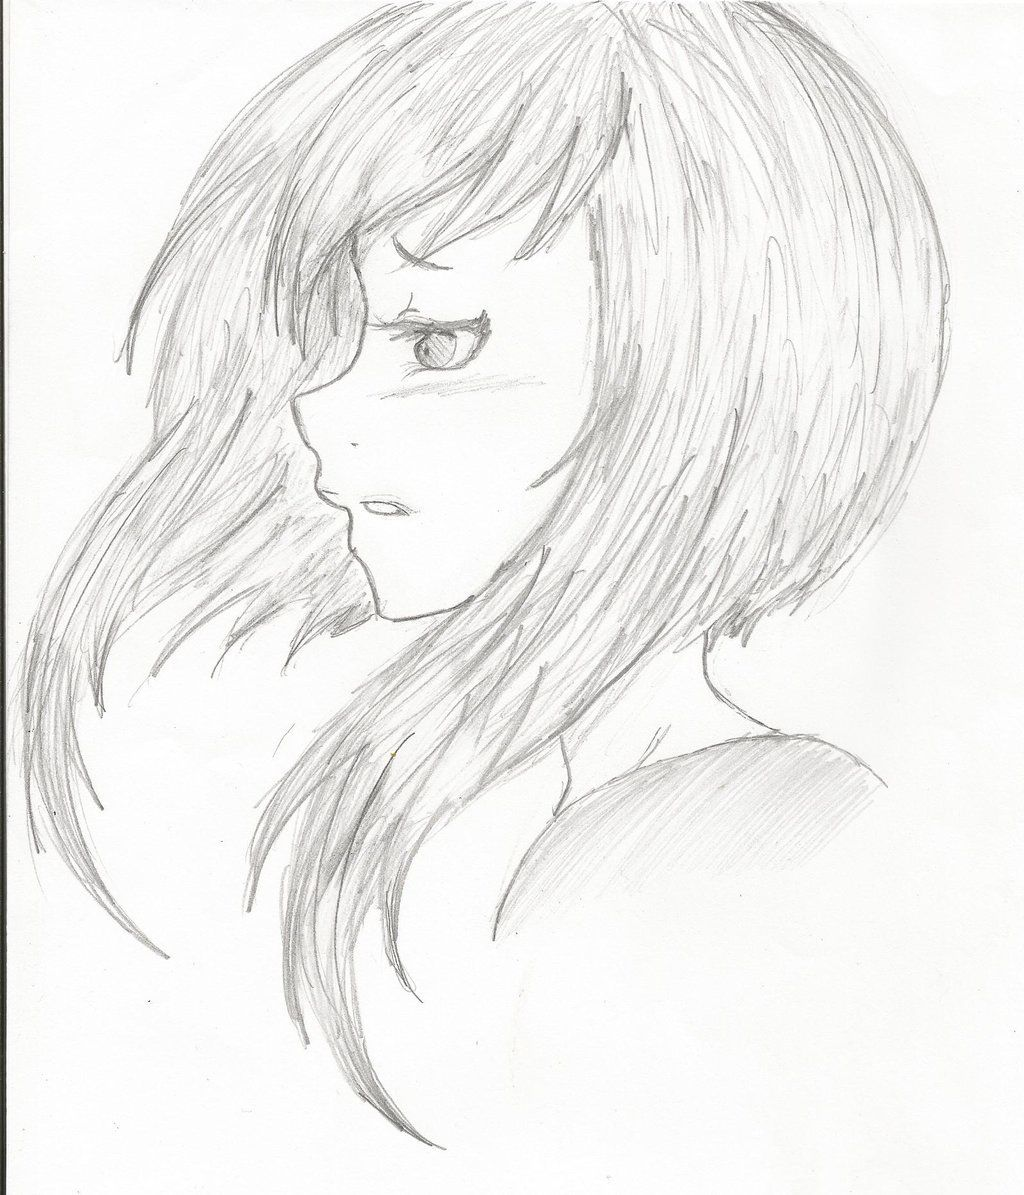 Girl Anime Drawing Side View Pencil Sketch